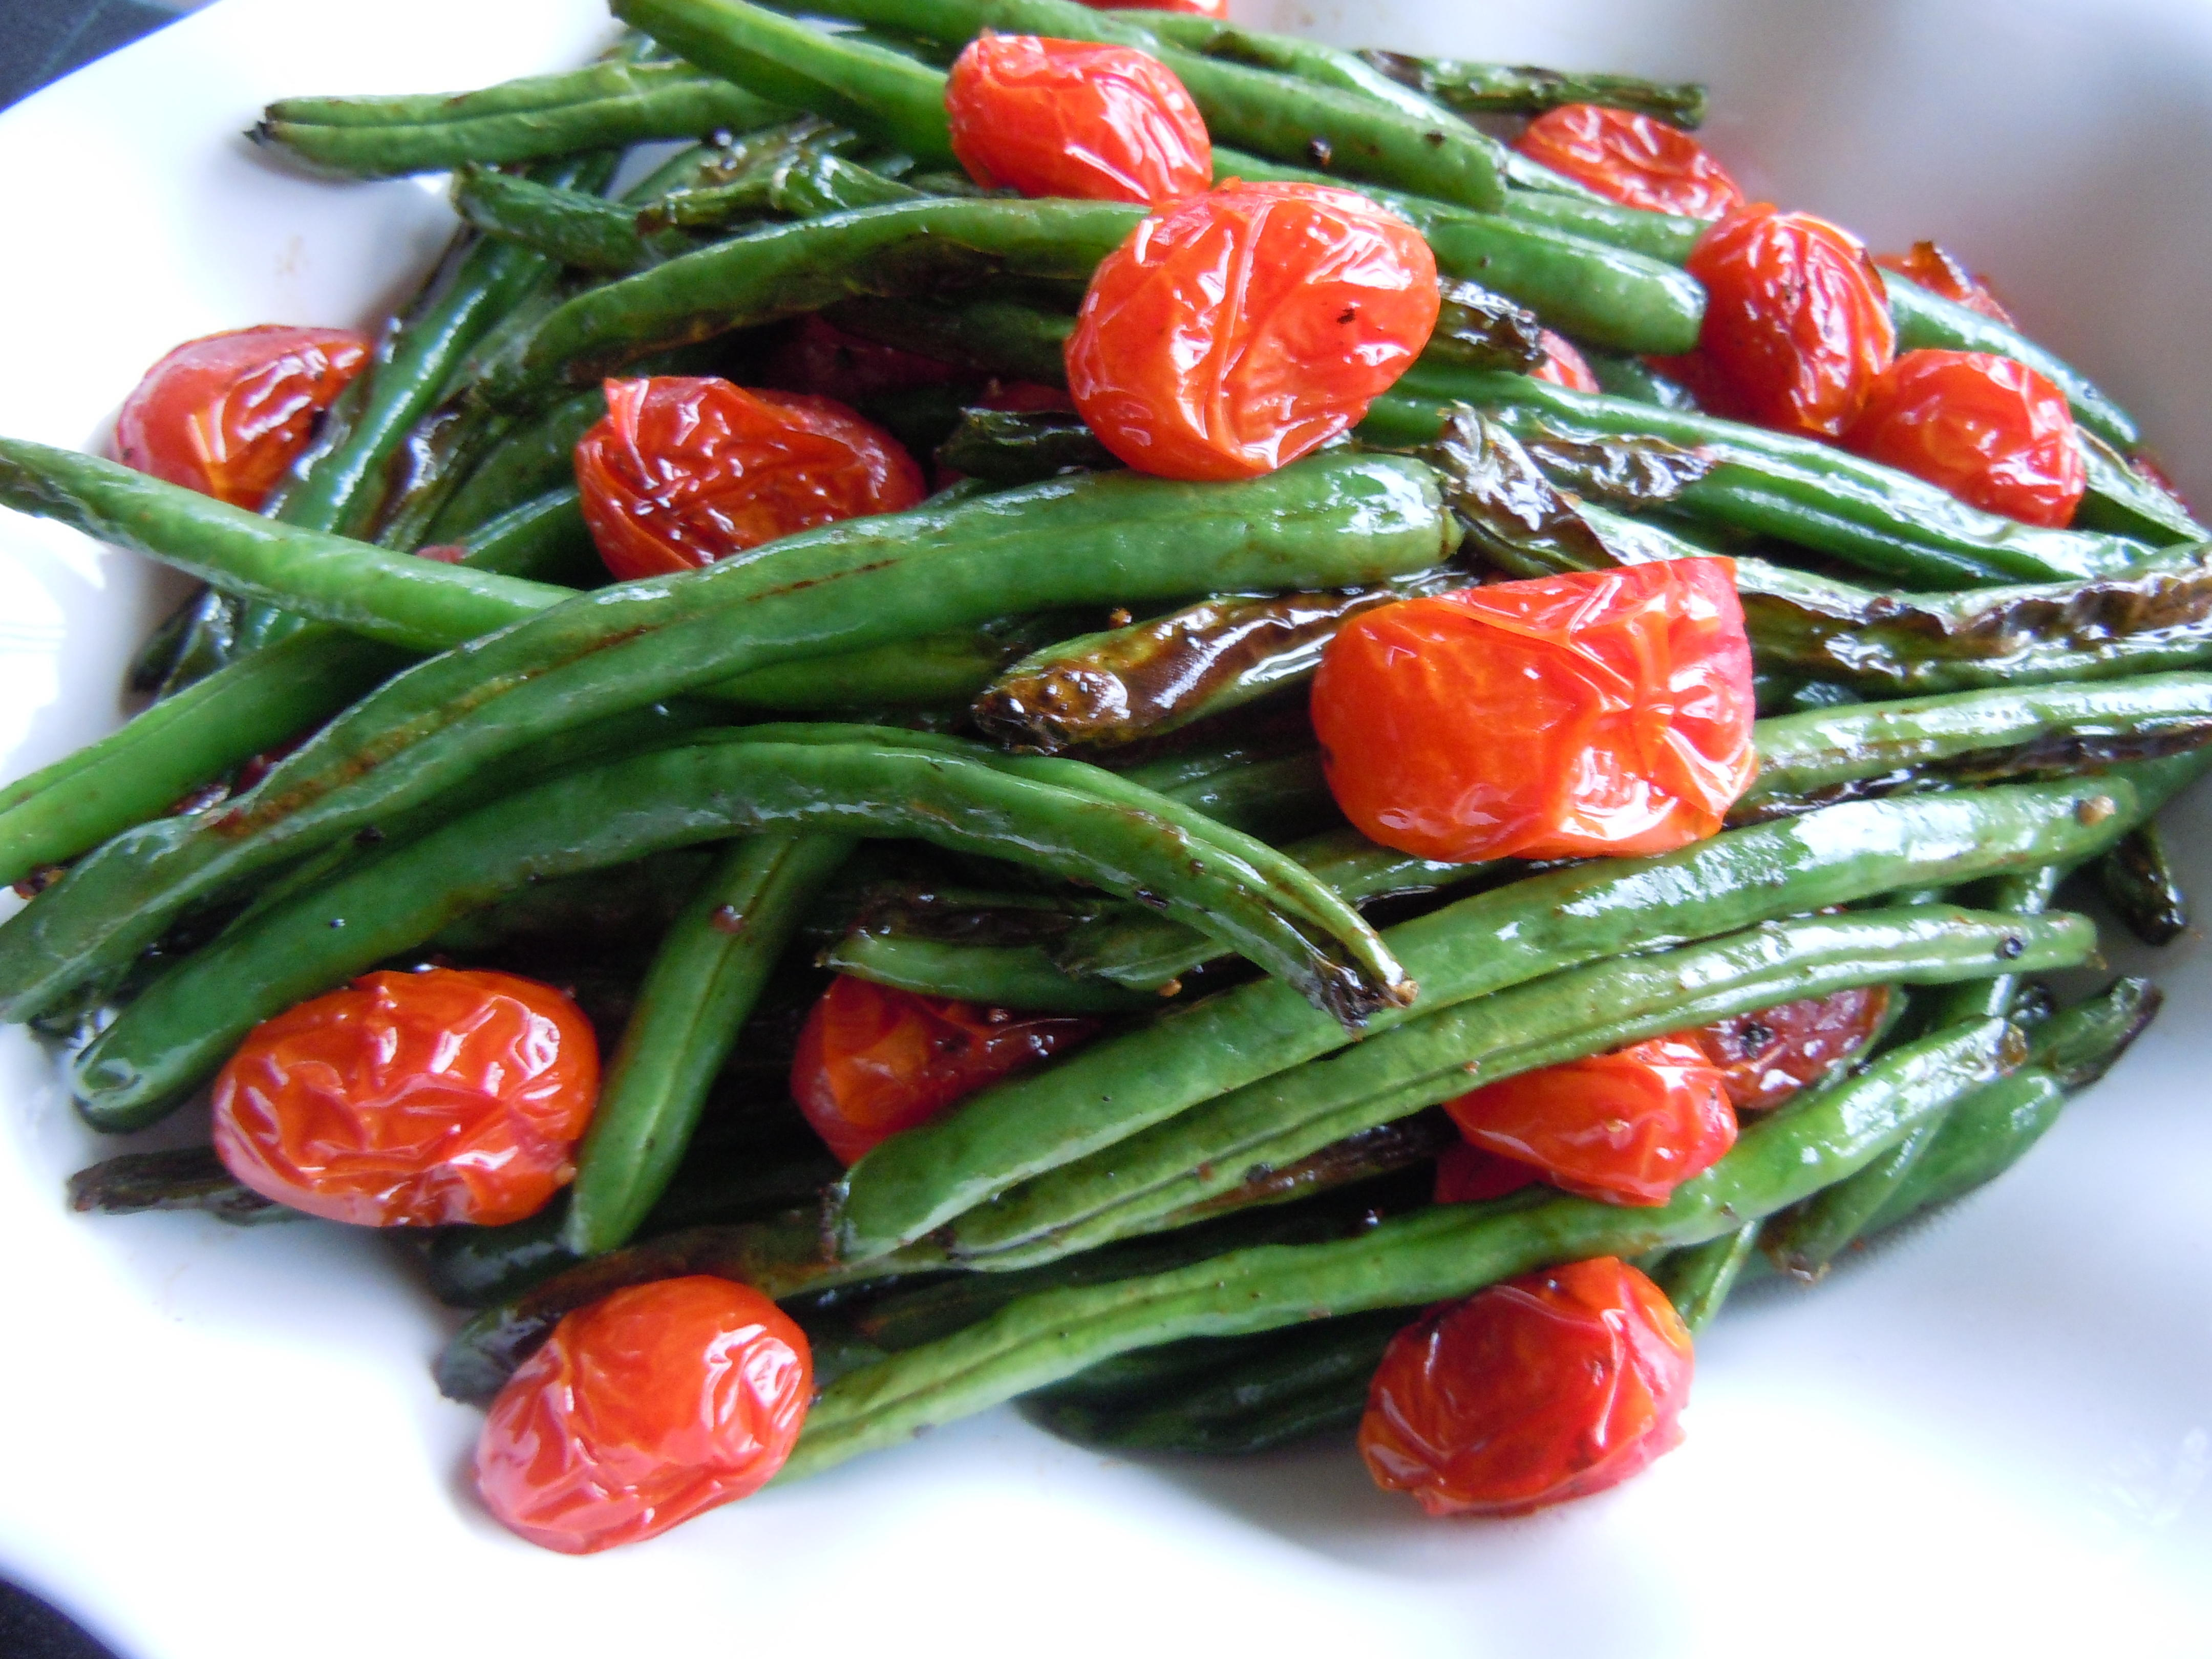 Forum on this topic: Roasted Salmon, Green Beans, and Tomatoes, roasted-salmon-green-beans-and-tomatoes/